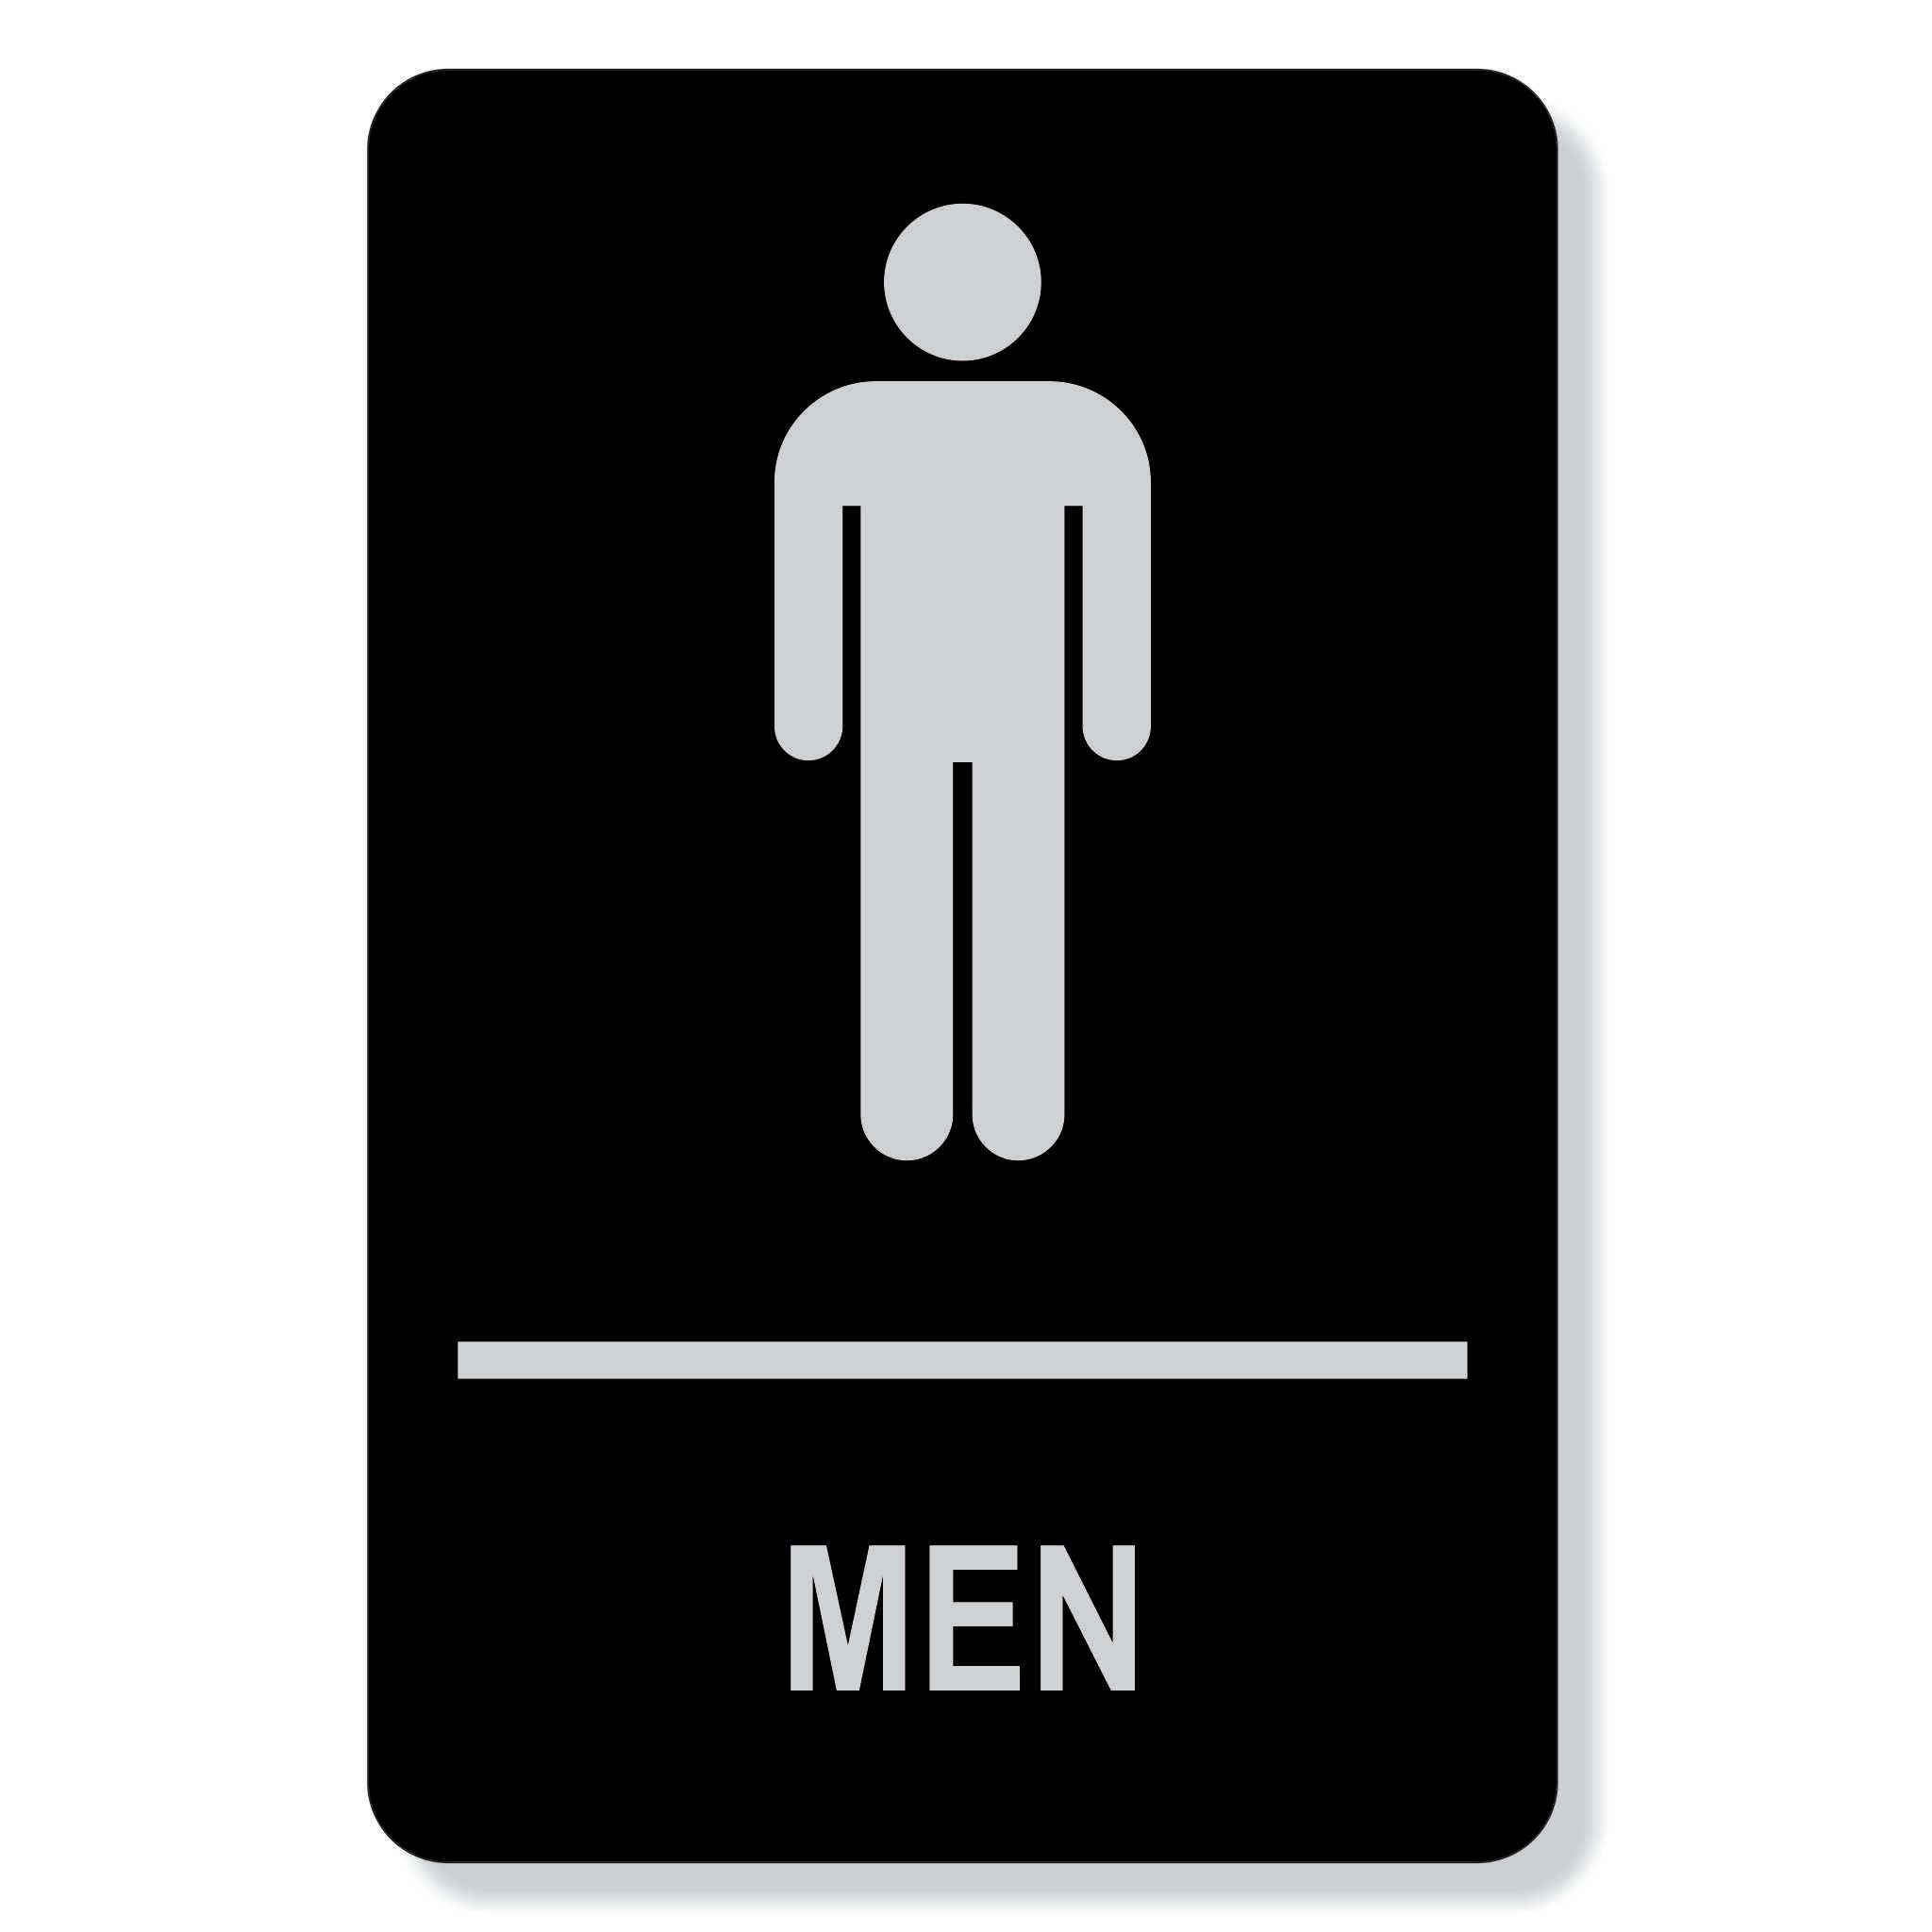 TJX- MEN washroom sign - non accessible facility